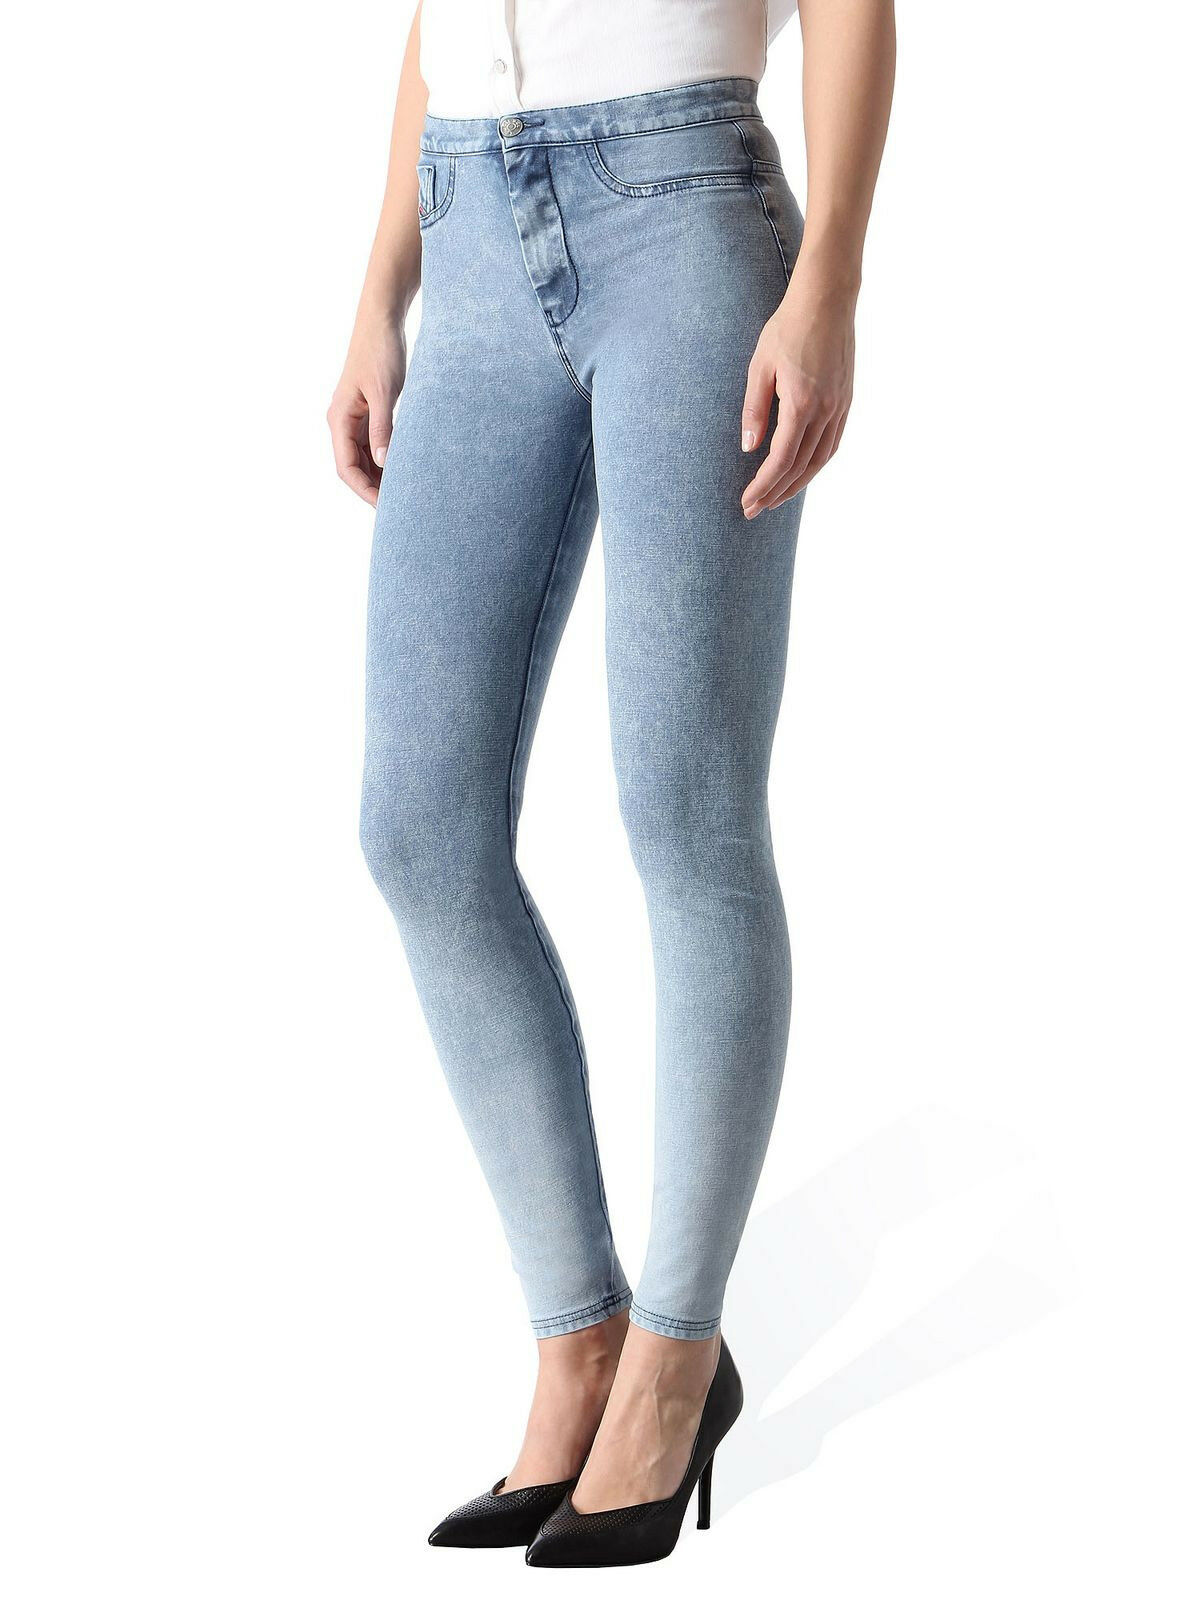 289 Authentic DIESEL Women's Cropped Skinny FLIXEE-ANKLE Motion Division Jeans